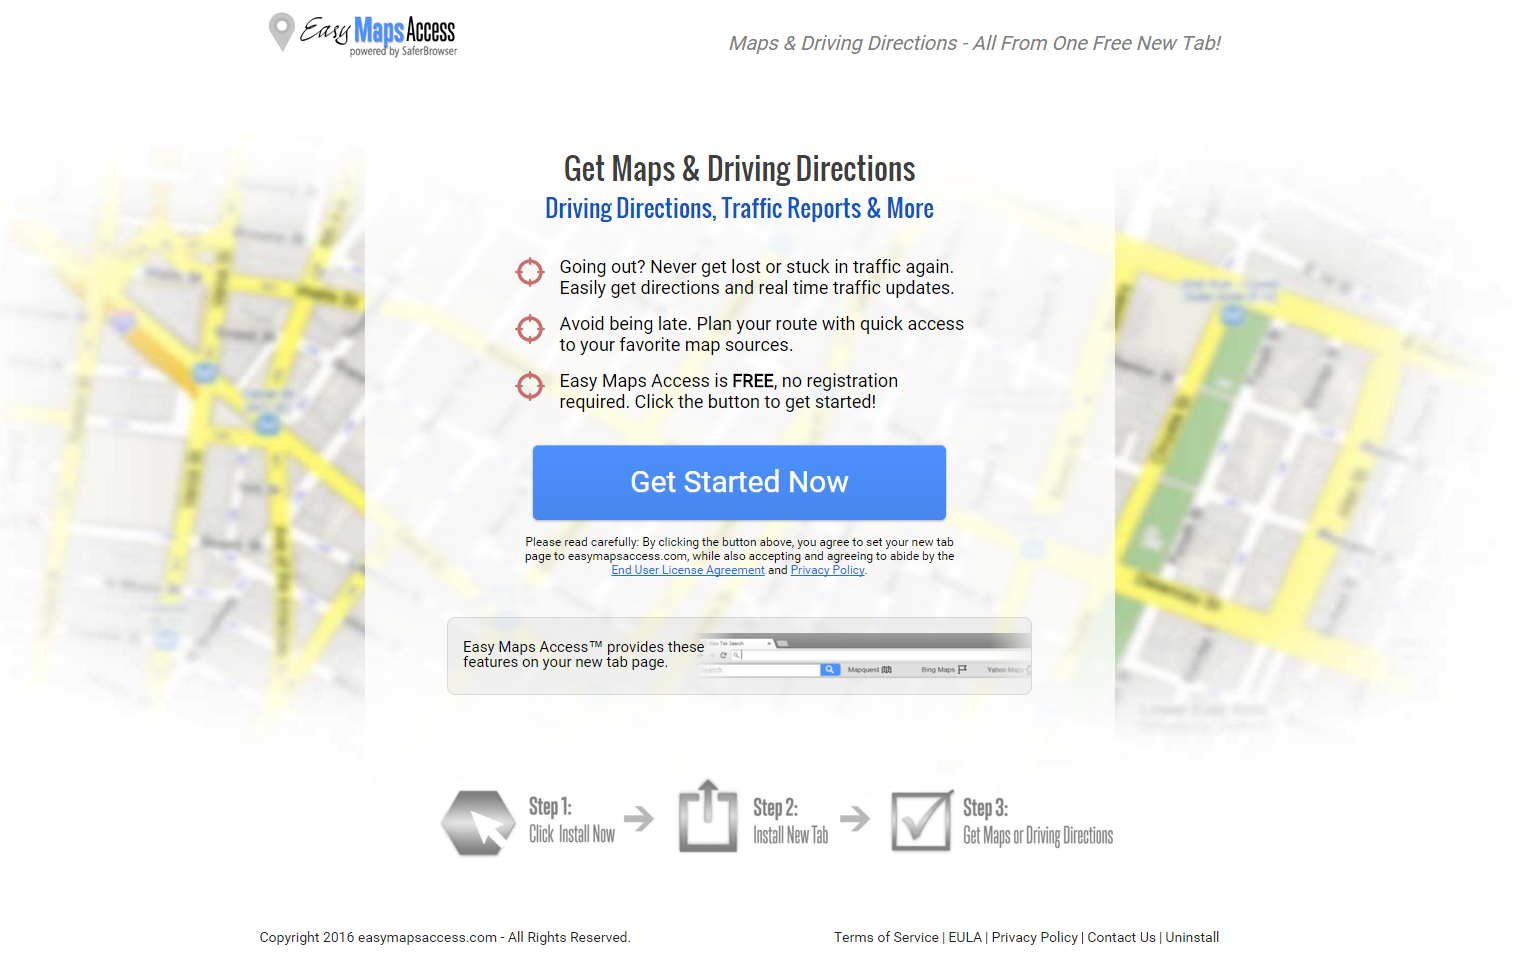 Easy Maps Access Ads